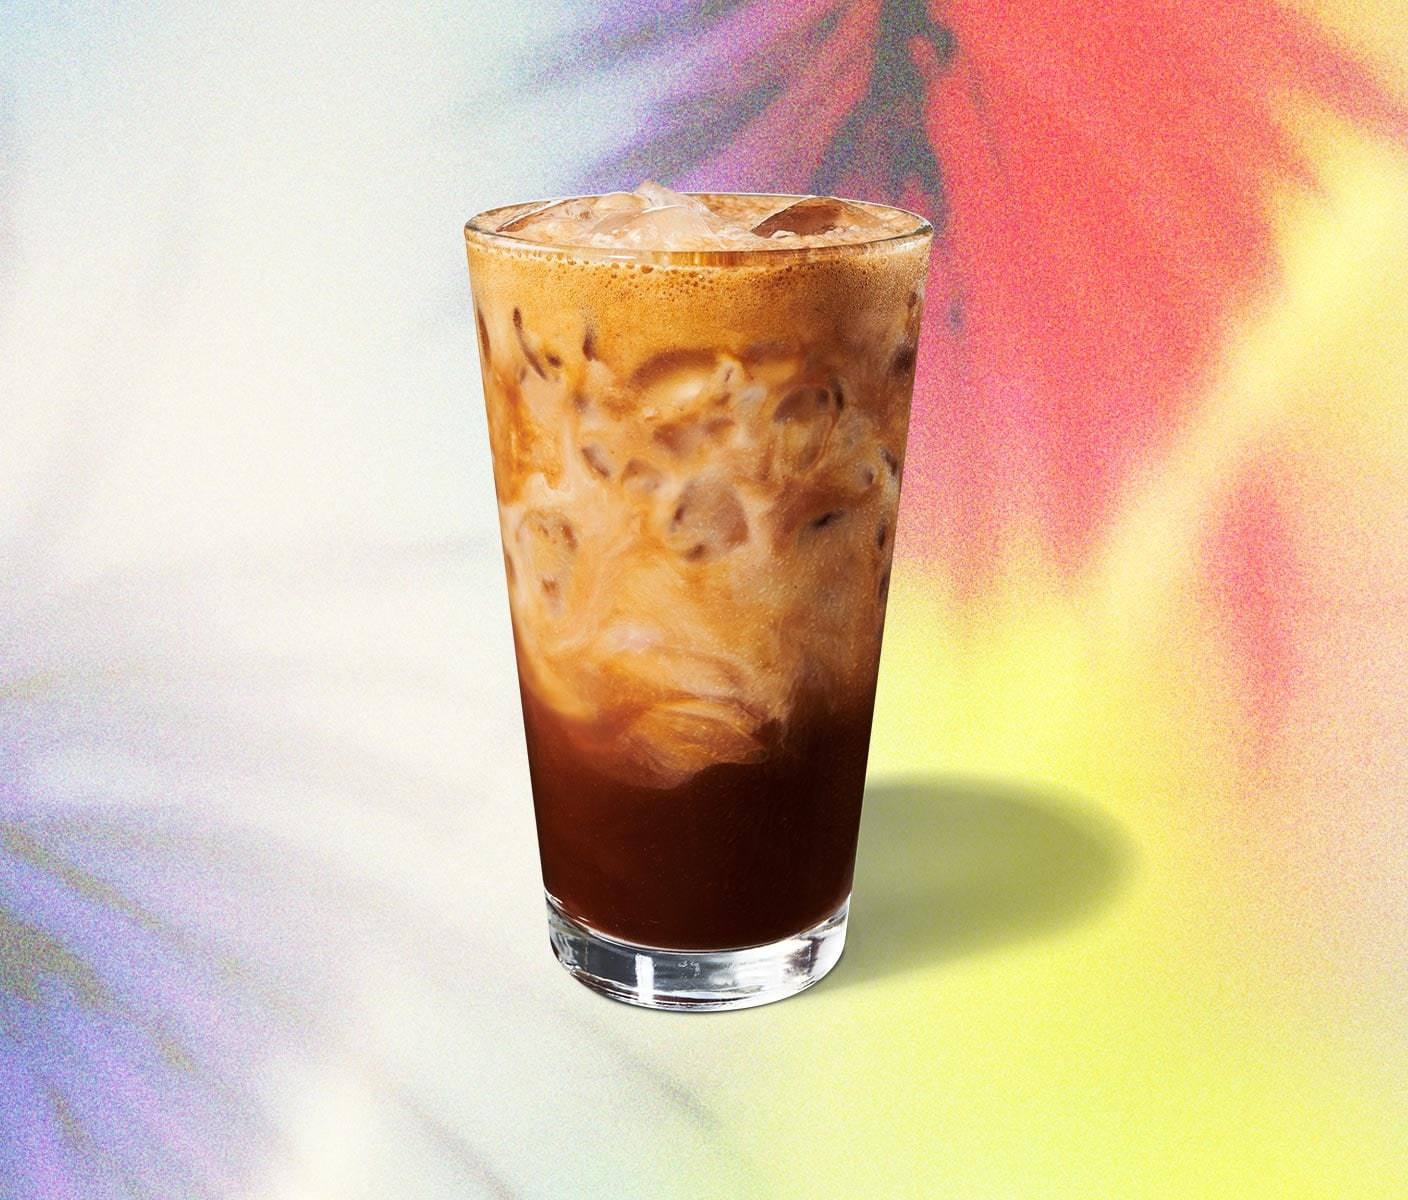 Layered, iced espresso beverage in a glass.